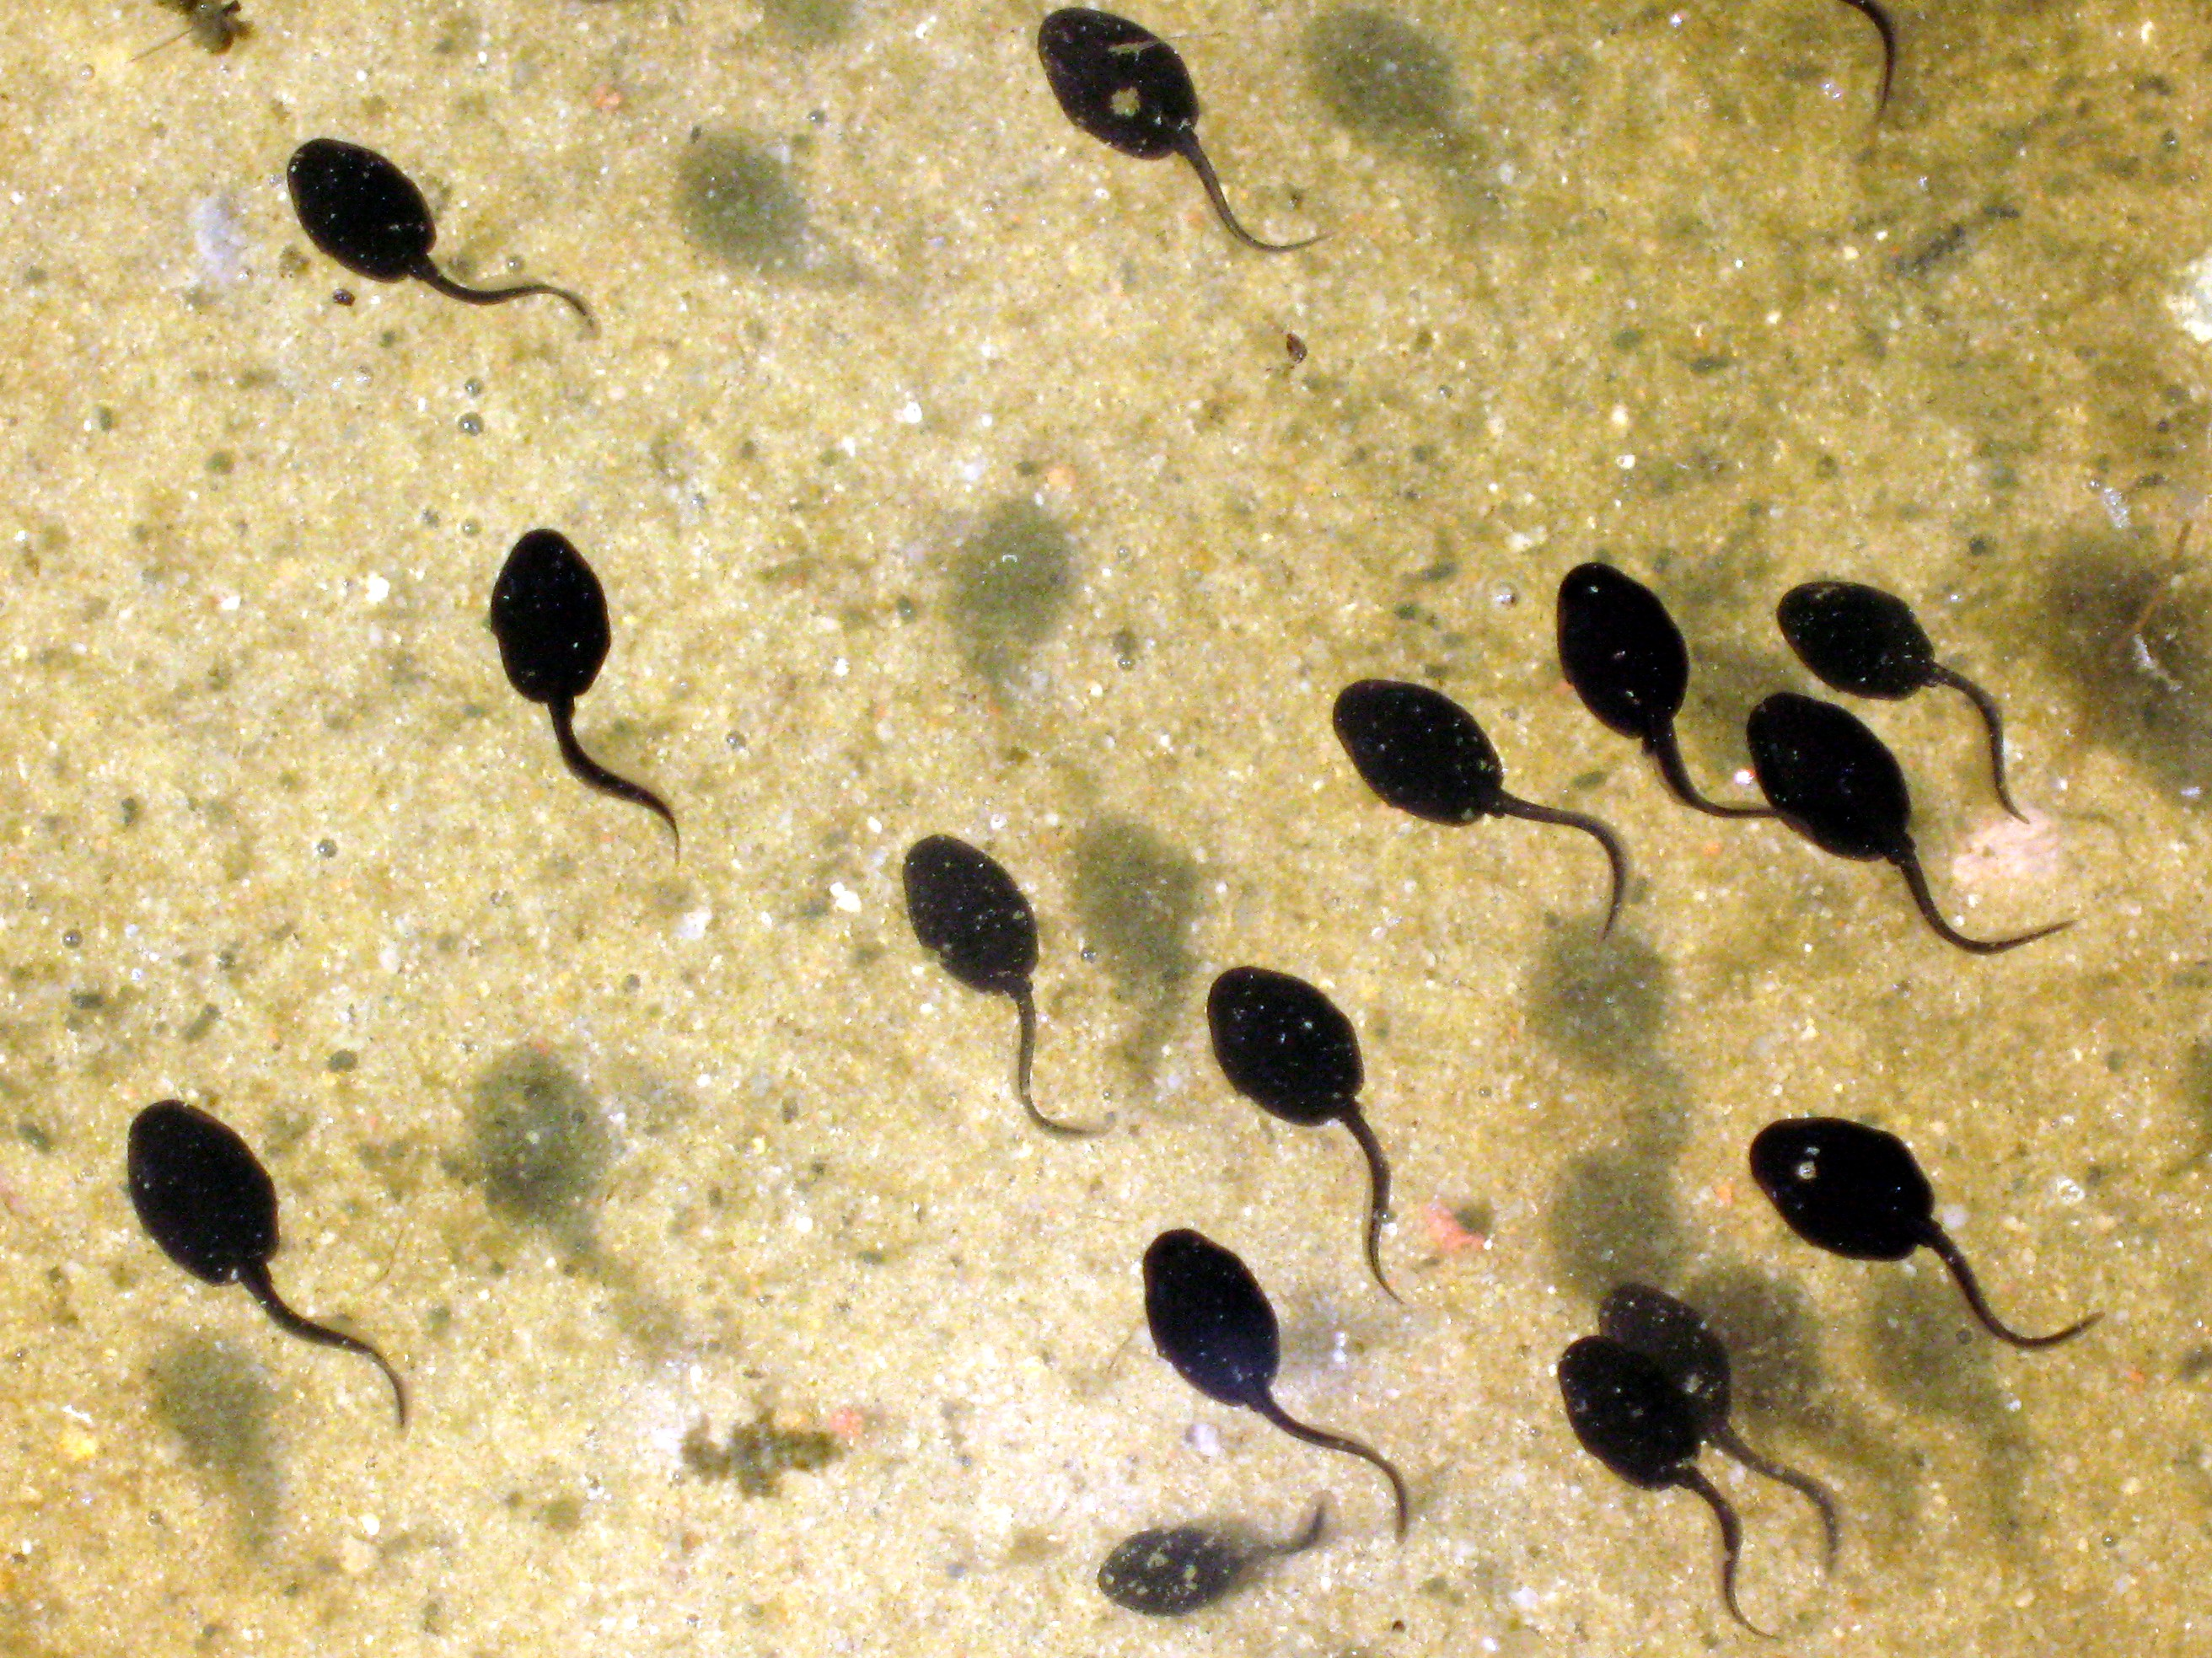 GM-free Scotland: Tadpole tails and Roundup herbicide